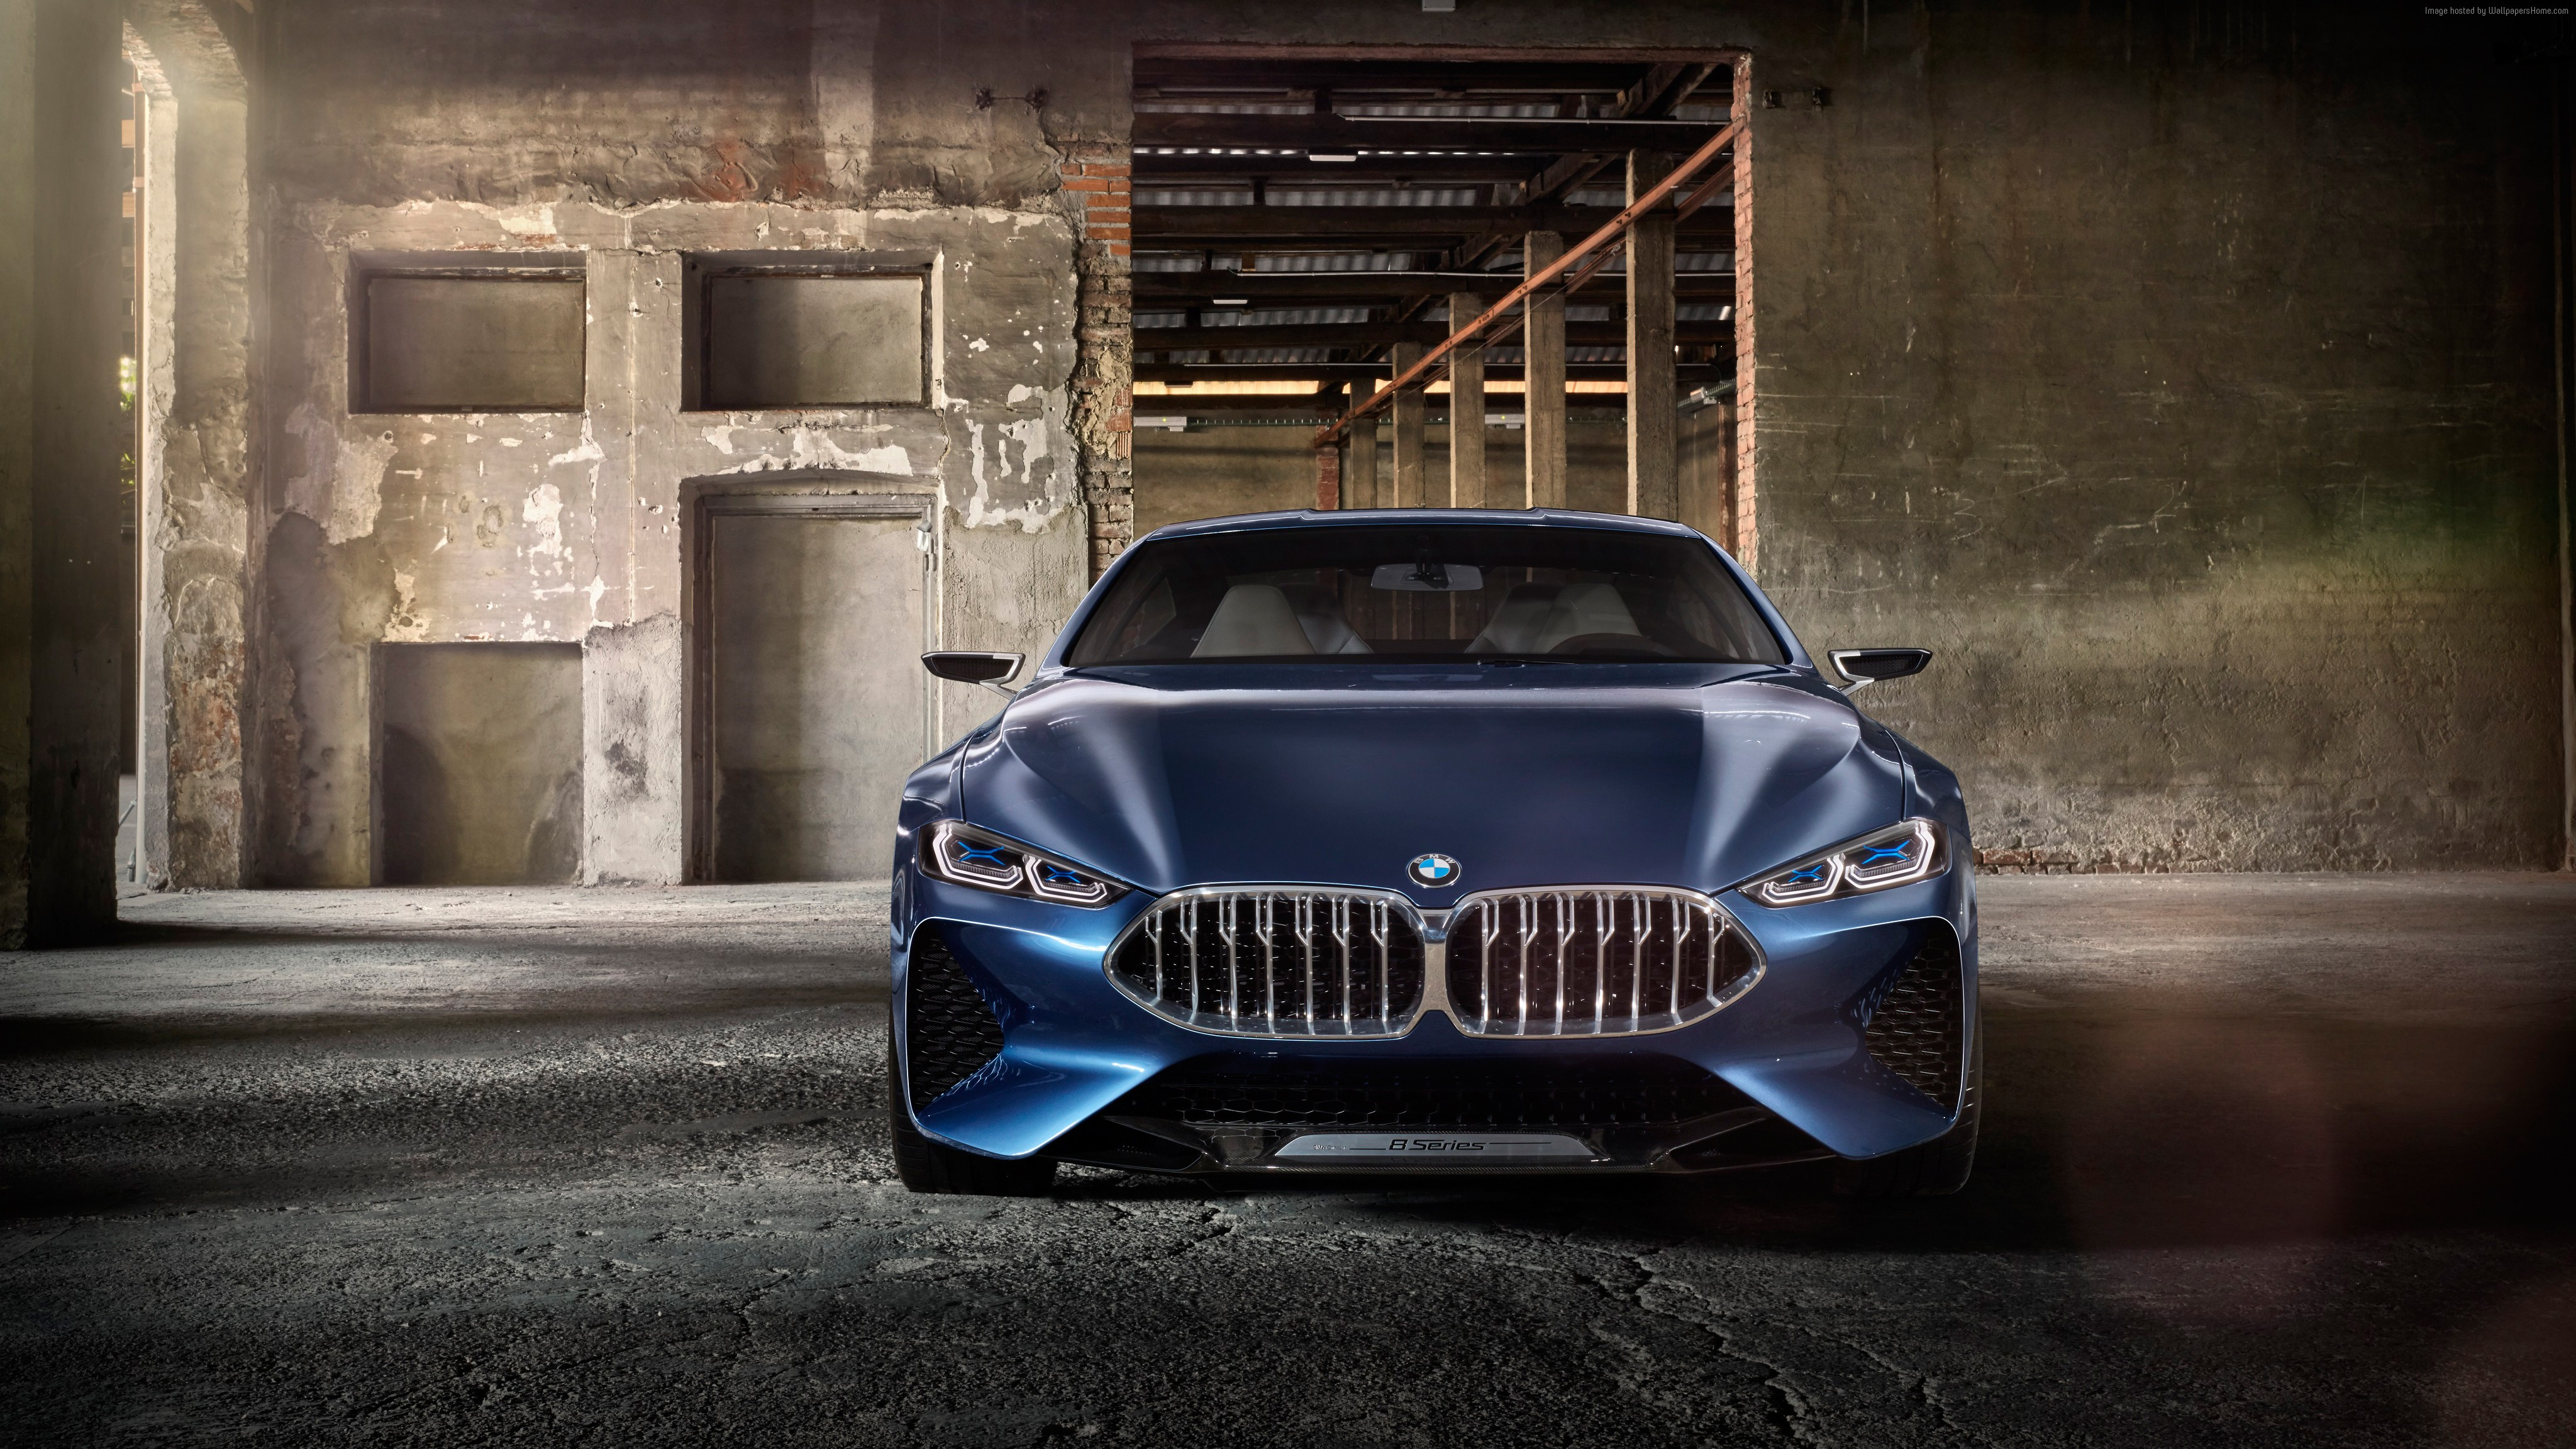 bmw 8 series cars 4k ultra high definition wallpapers